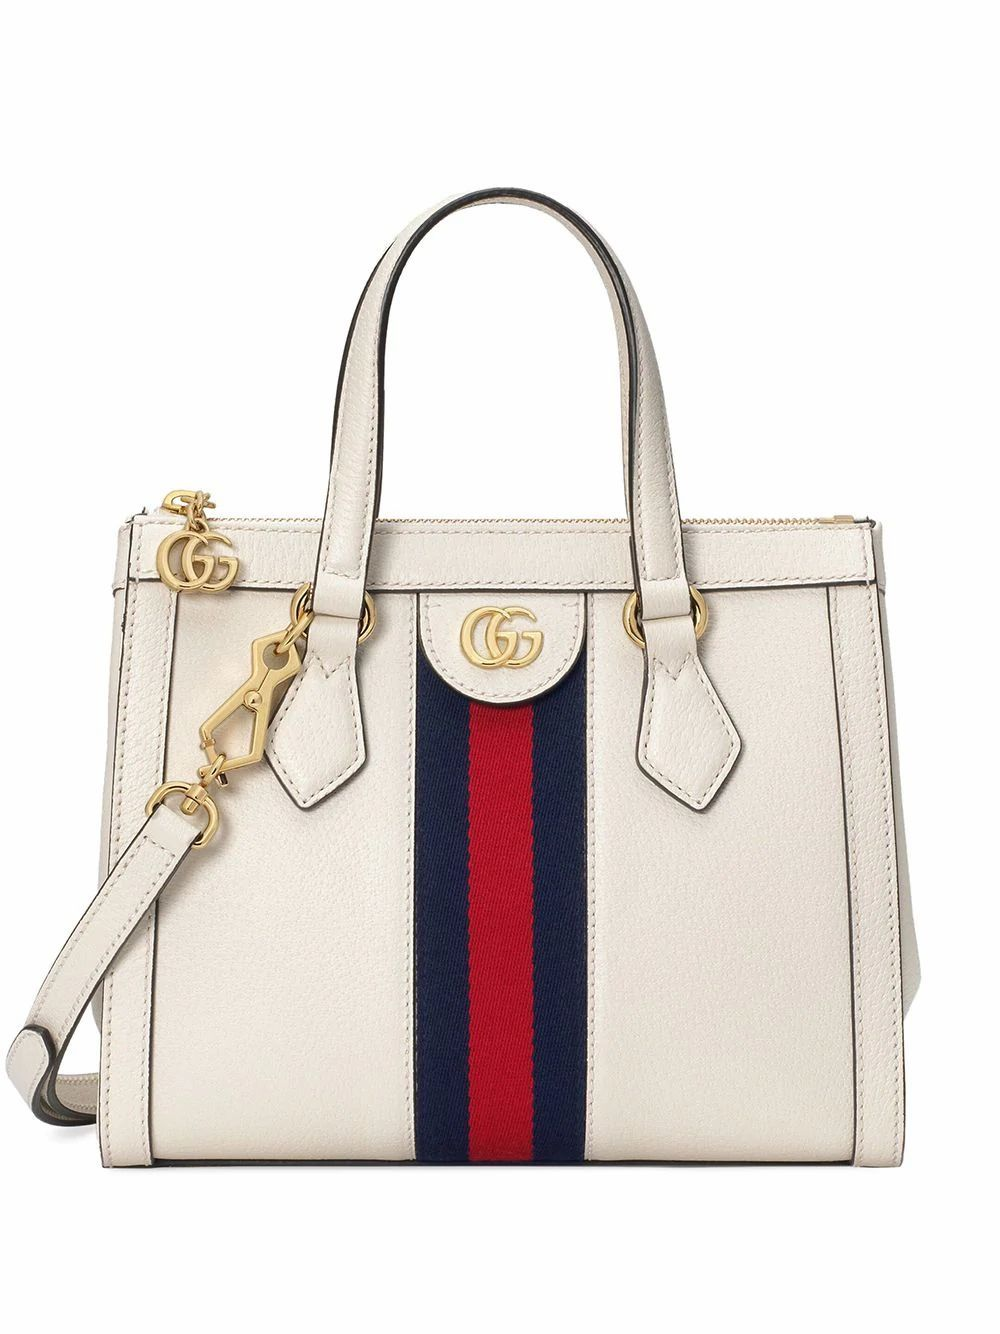 GUCCI WHITE HANDBAG